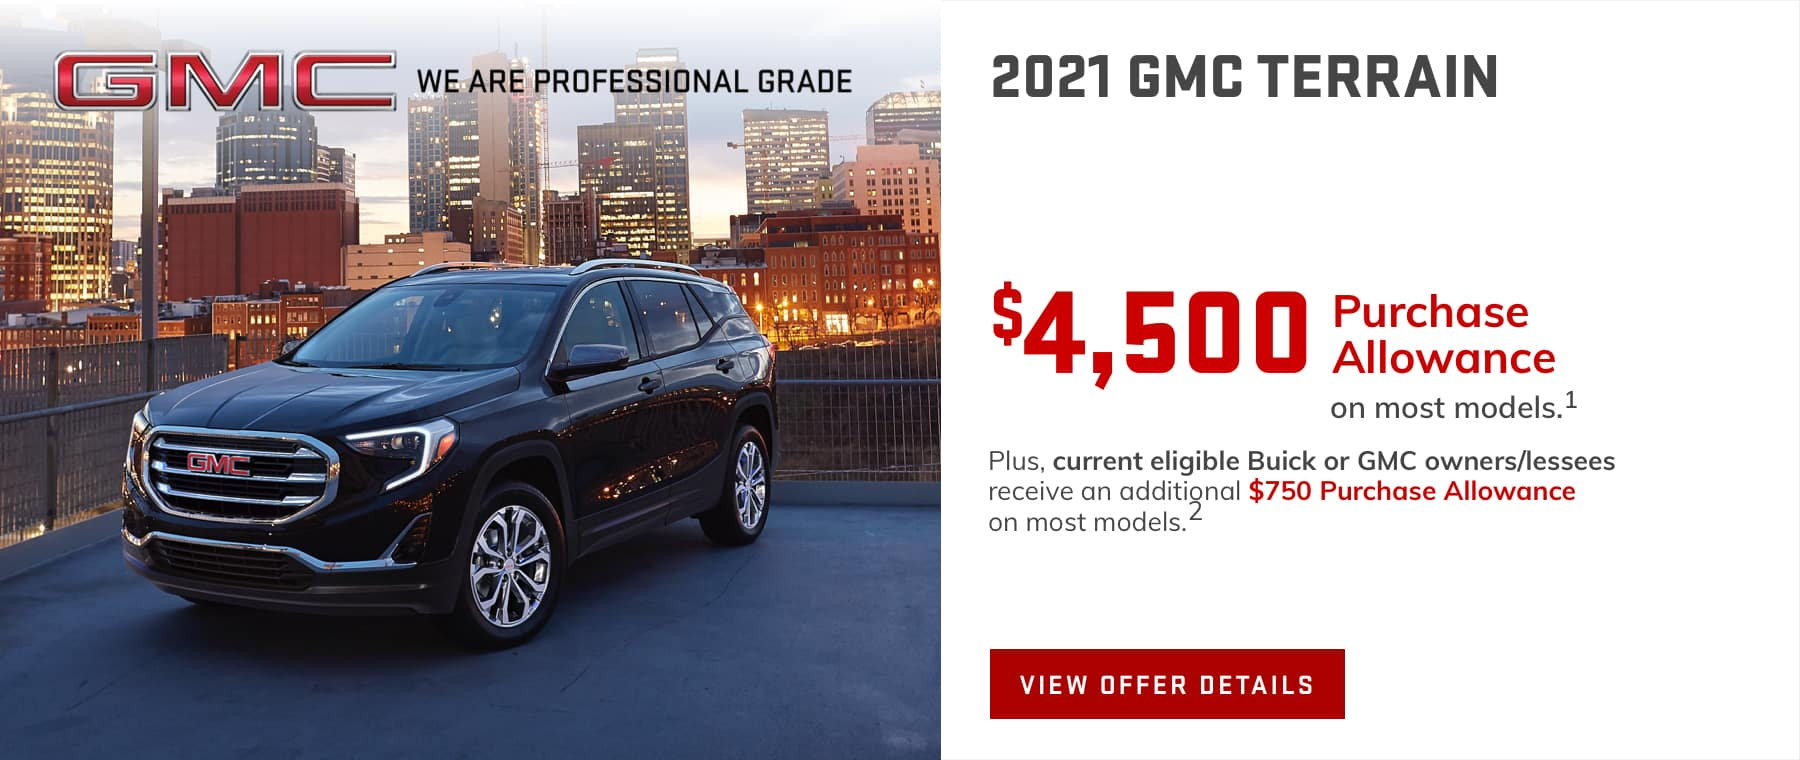 Price after all offers on this Terrain.1 Plus, current eligible Buick or GMC owners/lessees receive an additional $750 Purchase Allowance on most models.2